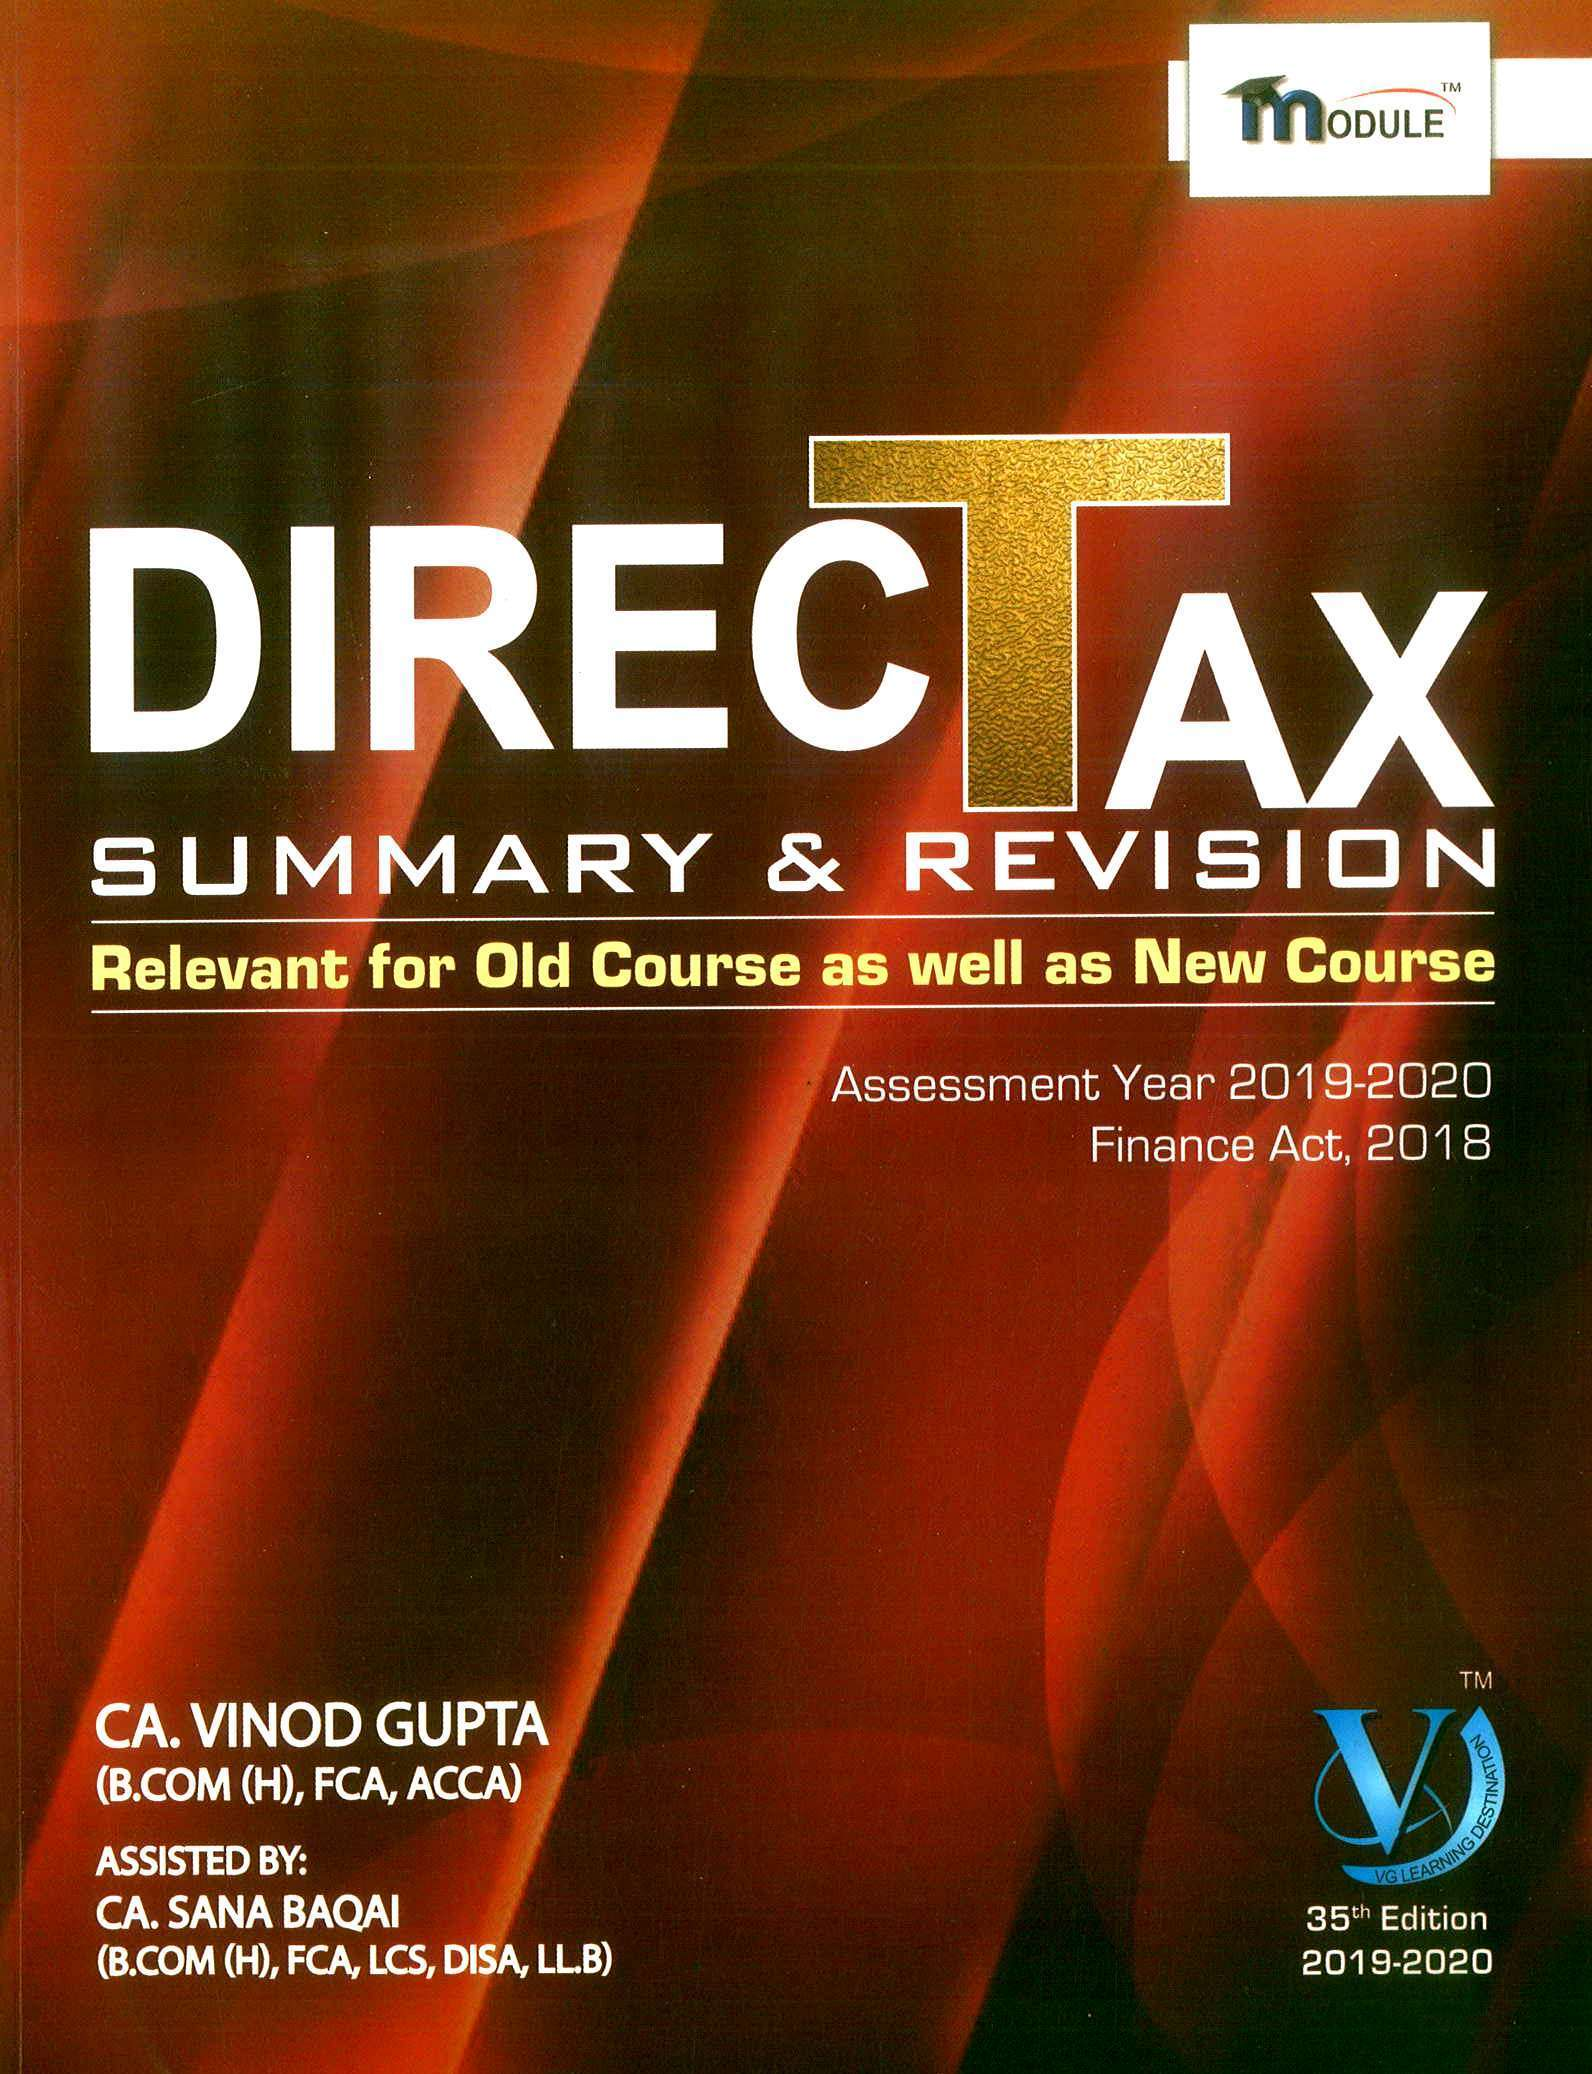 VG Learning Destination Direct Tax Summary Module for CA Final by Vinod Gupta Applicable for Nov 2019 Exam (VG Learning Destination Publishing) Edition 2019